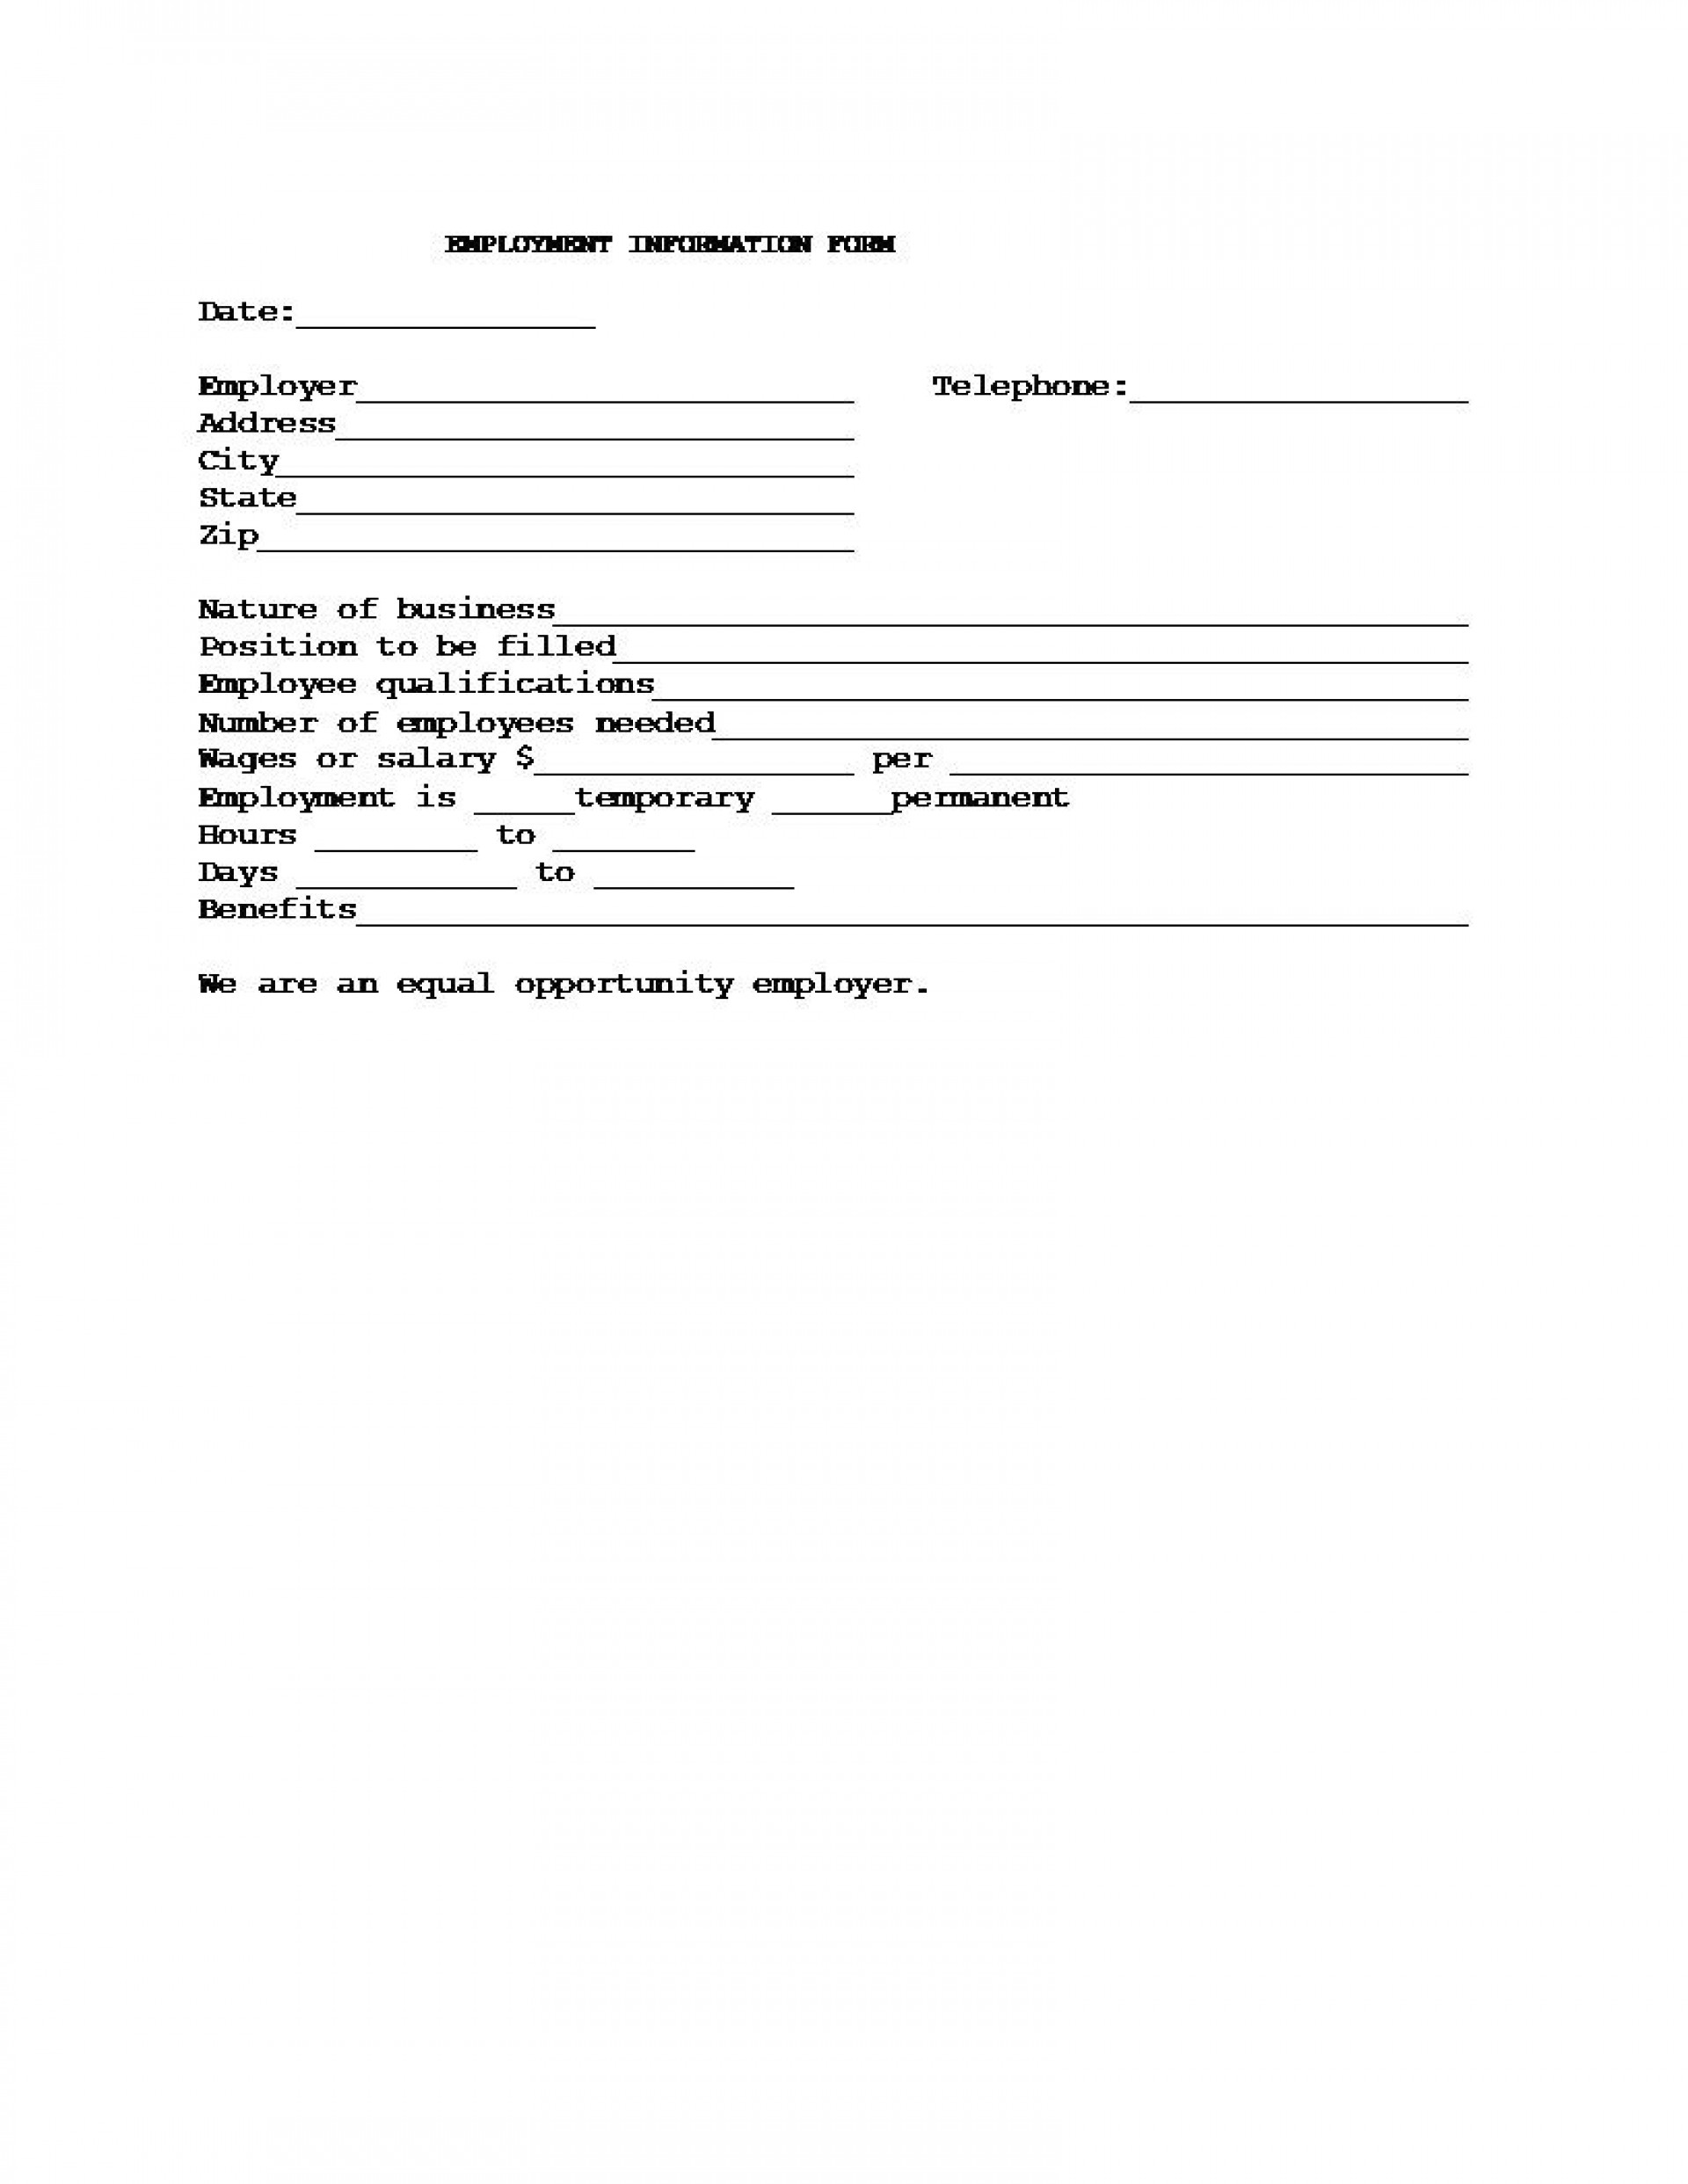 009 Incredible Employment Information Form Template Example  Employee Registration Free Download Application Malaysia Word1920